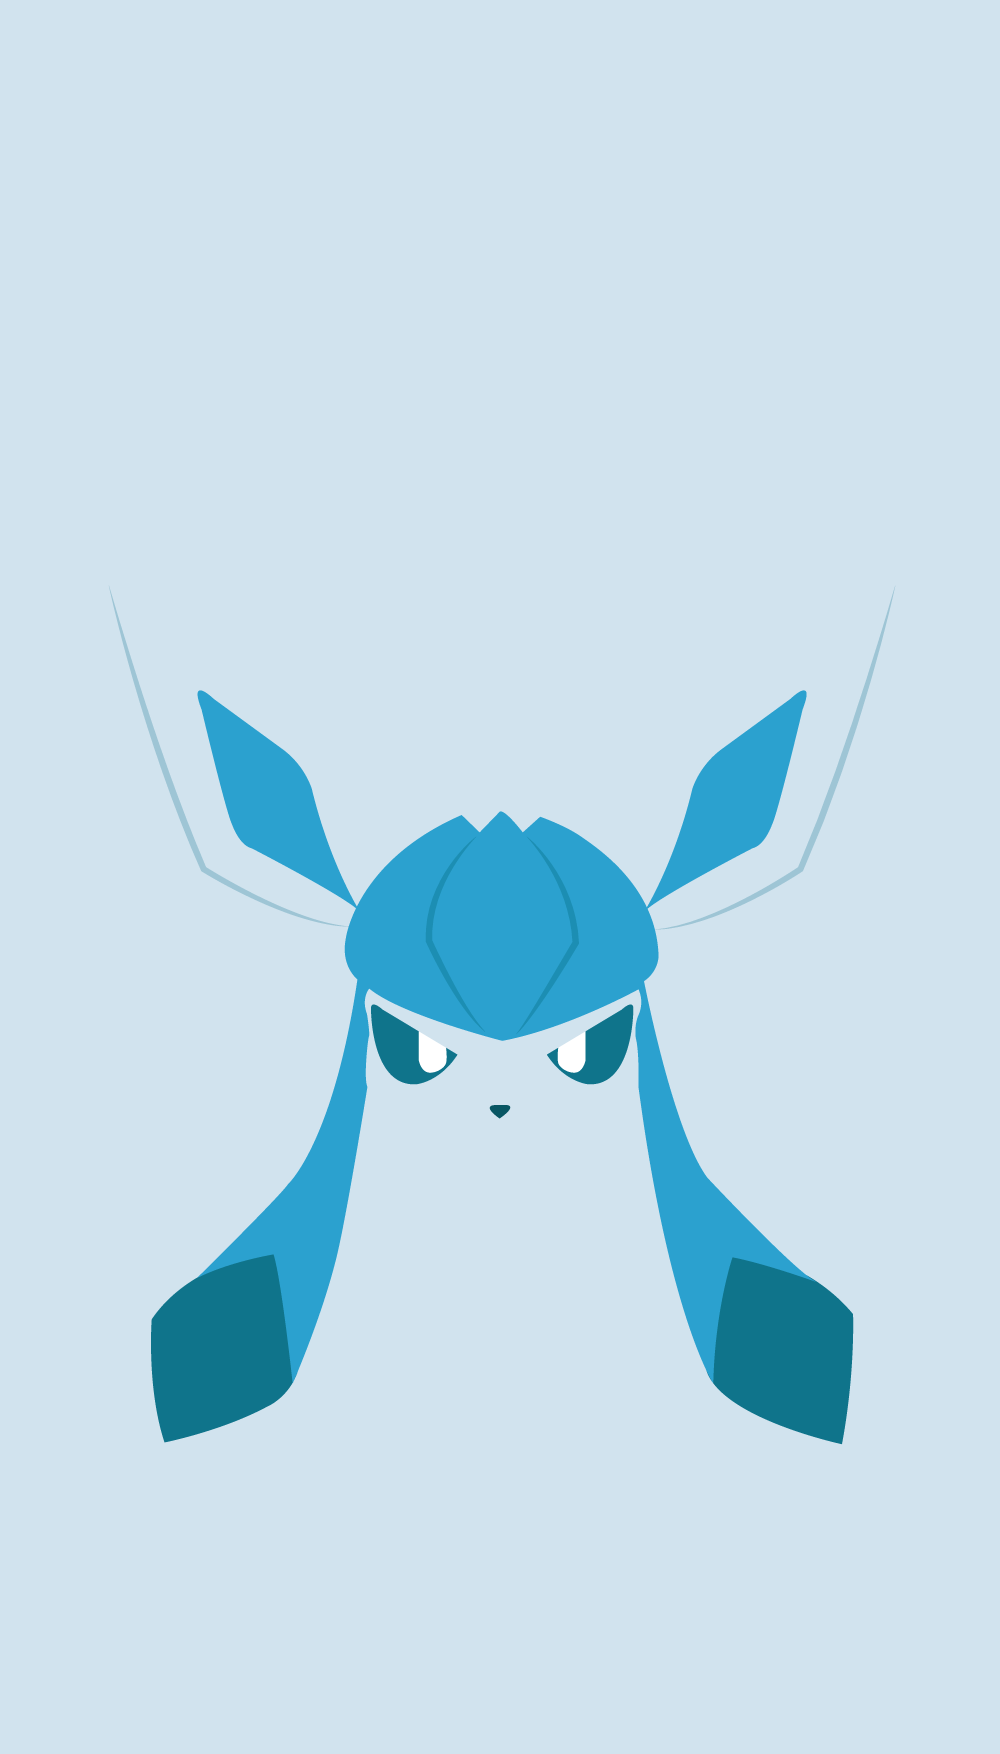 Pokemon Wallpaper Glaceon | Pokemon | Pinterest | Pokémon ...